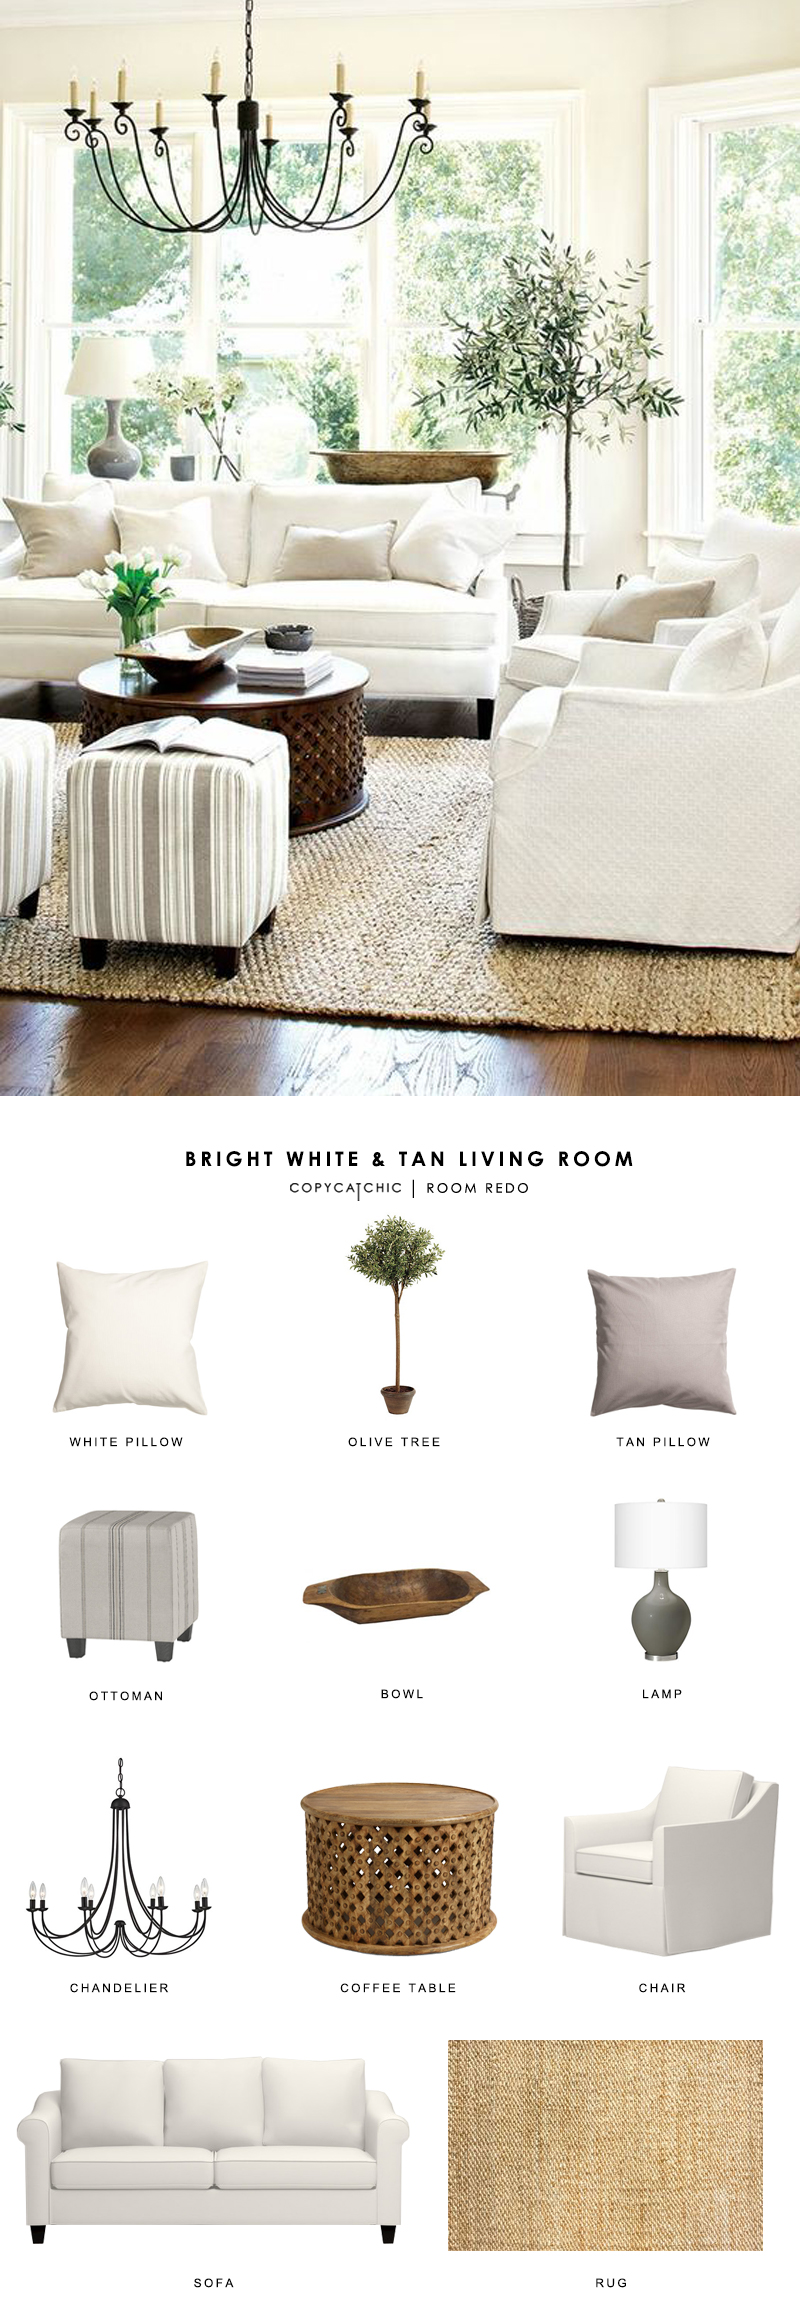 Copy Cat Chic Room Redo Bright White And Tan Living Room Copycatchic